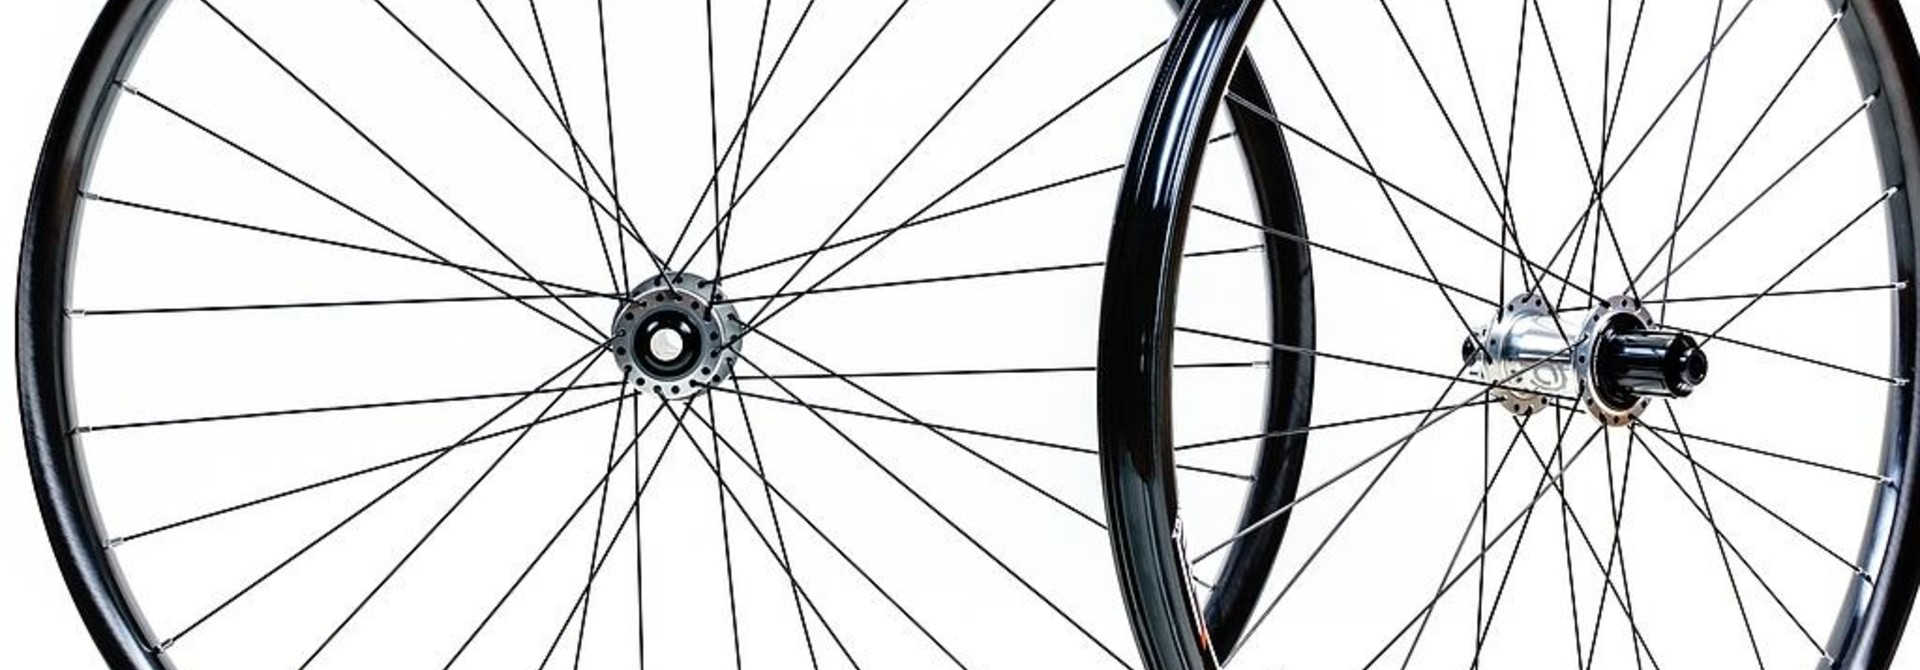 "We Are One Revolution Wheelset Union 29"" I9 1/1 Superboost Microspline 6b Sapim Race Black"